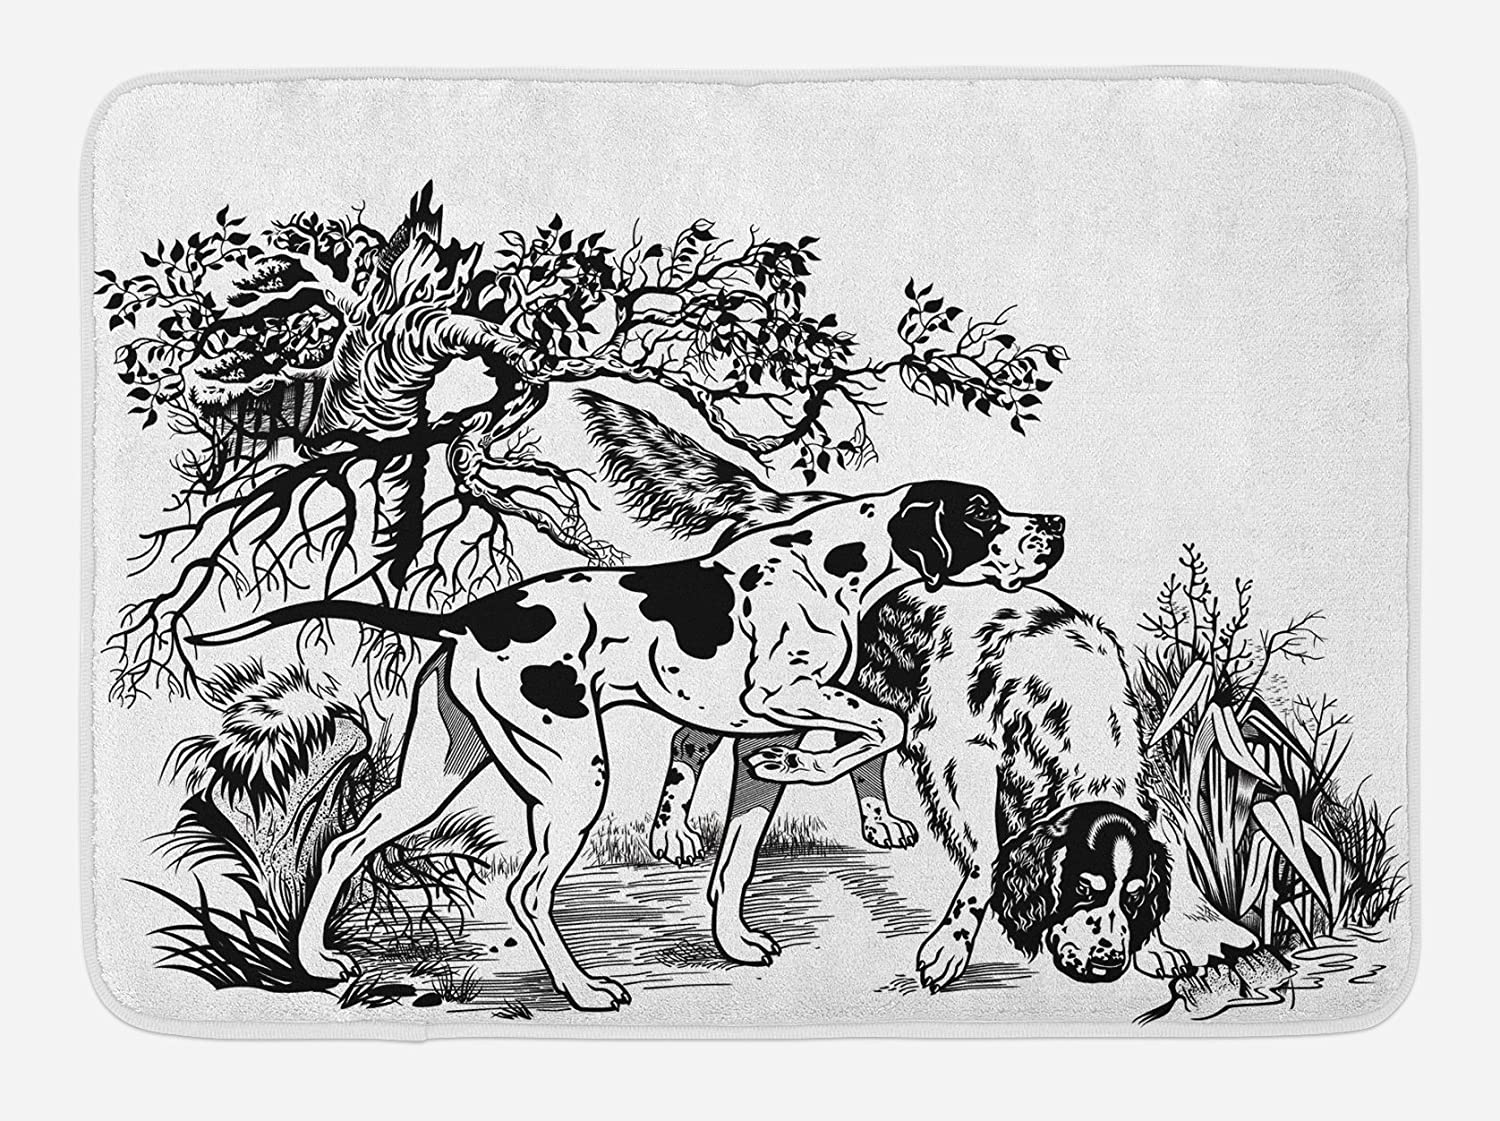 Ambesonne Hunting Bath Mat, Hunting Dogs in The Forest Monochrome Drawing English Pointer and Setter Breeds, Plush Bathroom Decor Mat with Non Slip Backing, 29.5